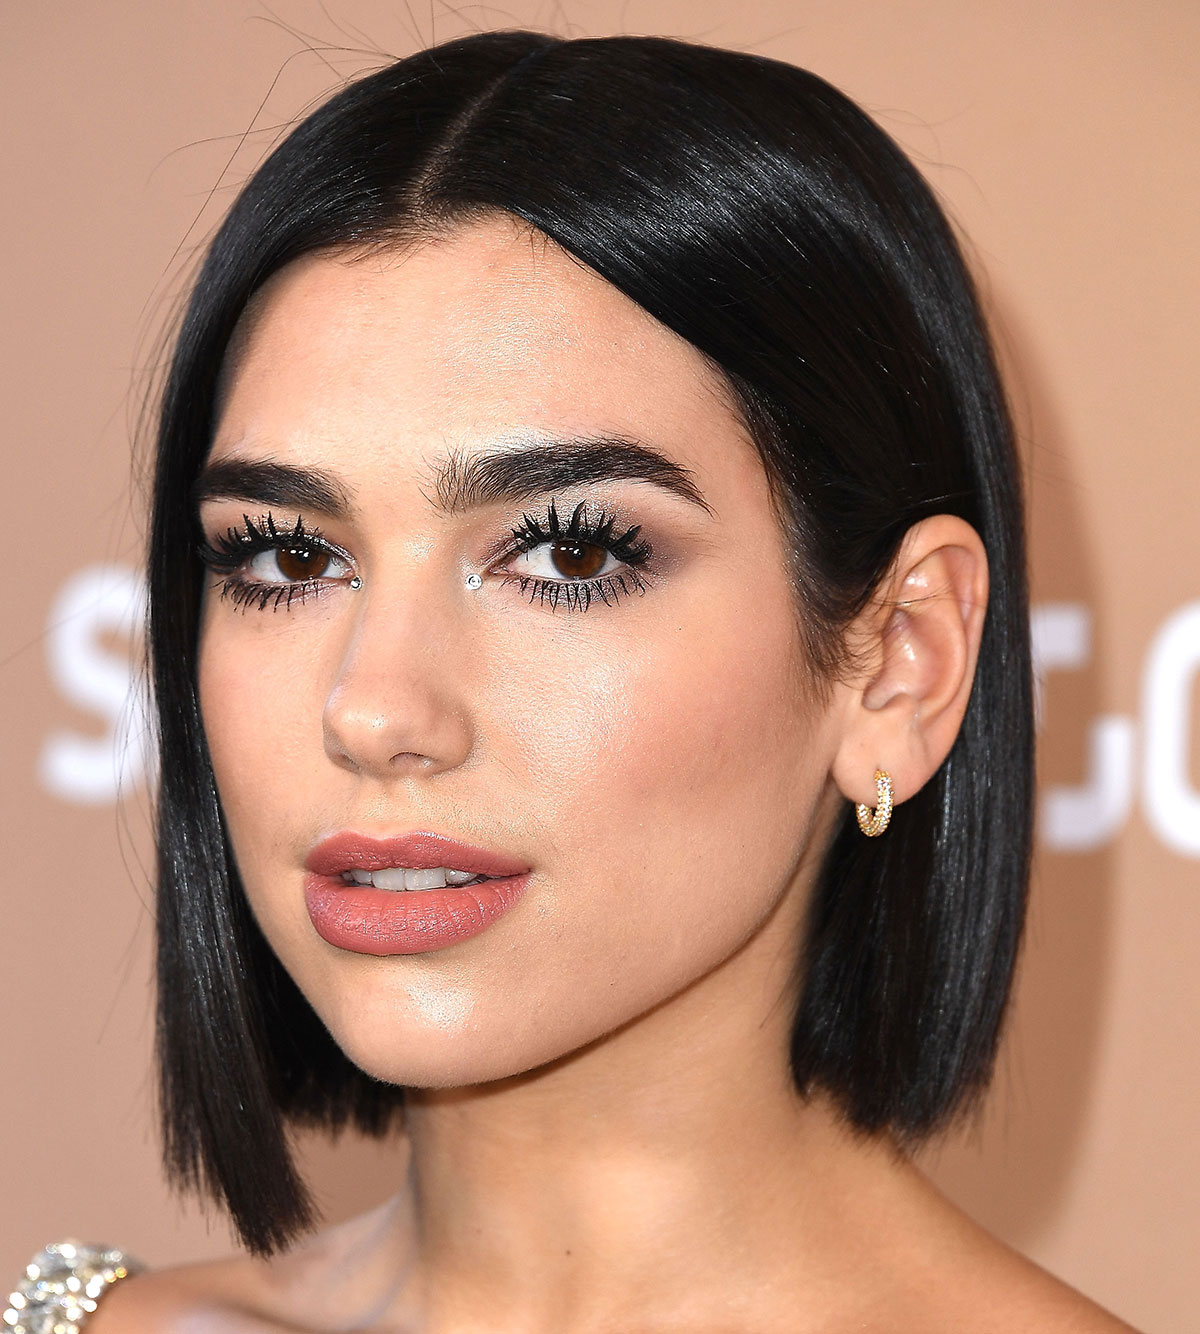 Blunt Bob Haircut | 7 Short Hairstyles That'll Convince You to Make the Switch